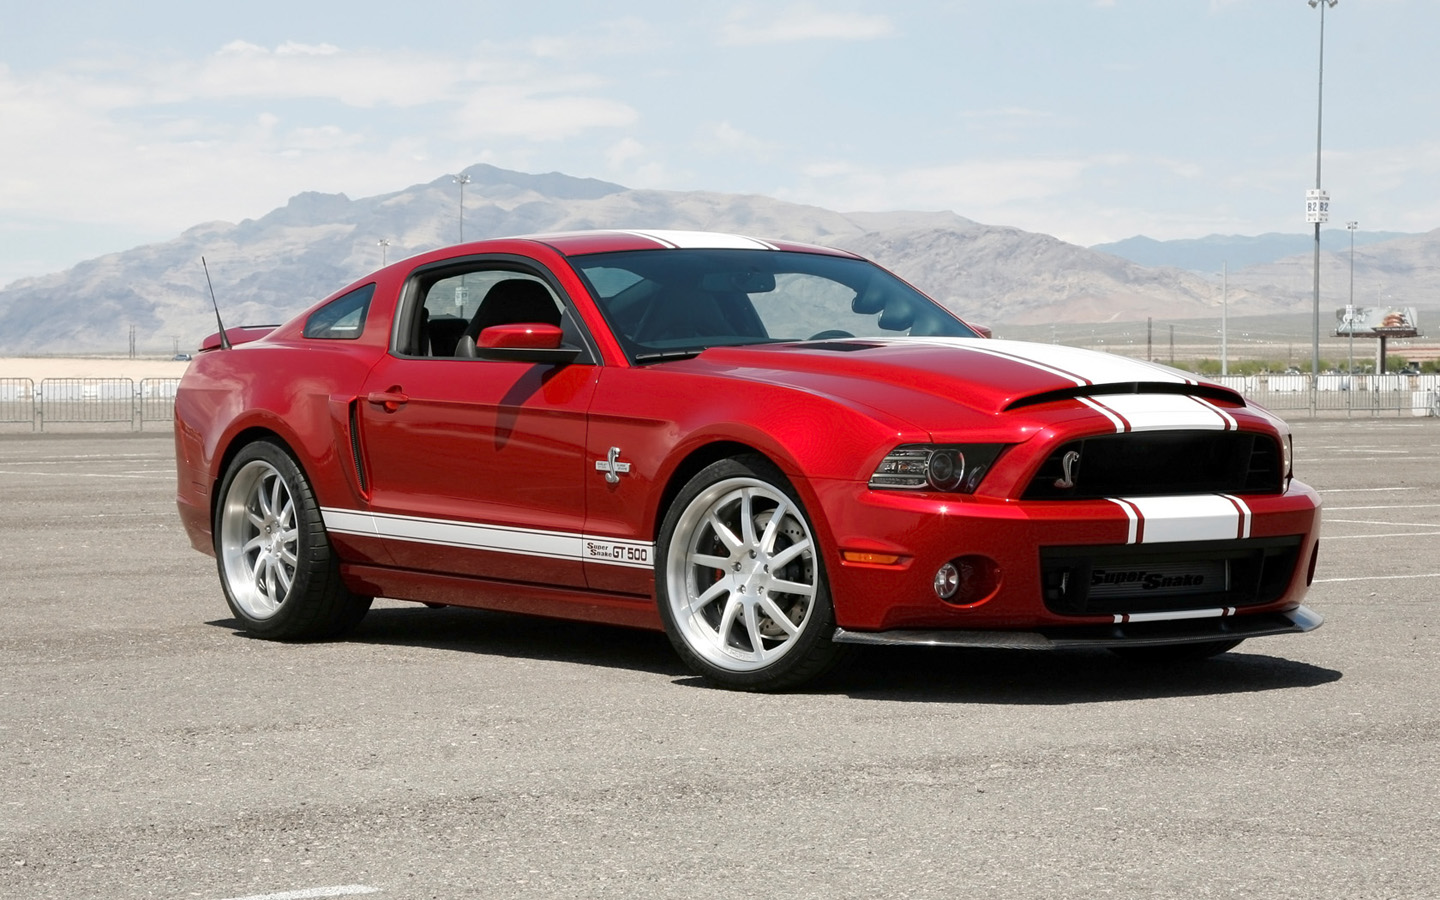 Ford mustang shelby gt500 super snake photos photogallery with new ford mustang shelby gt500 super snake pictures sciox Image collections